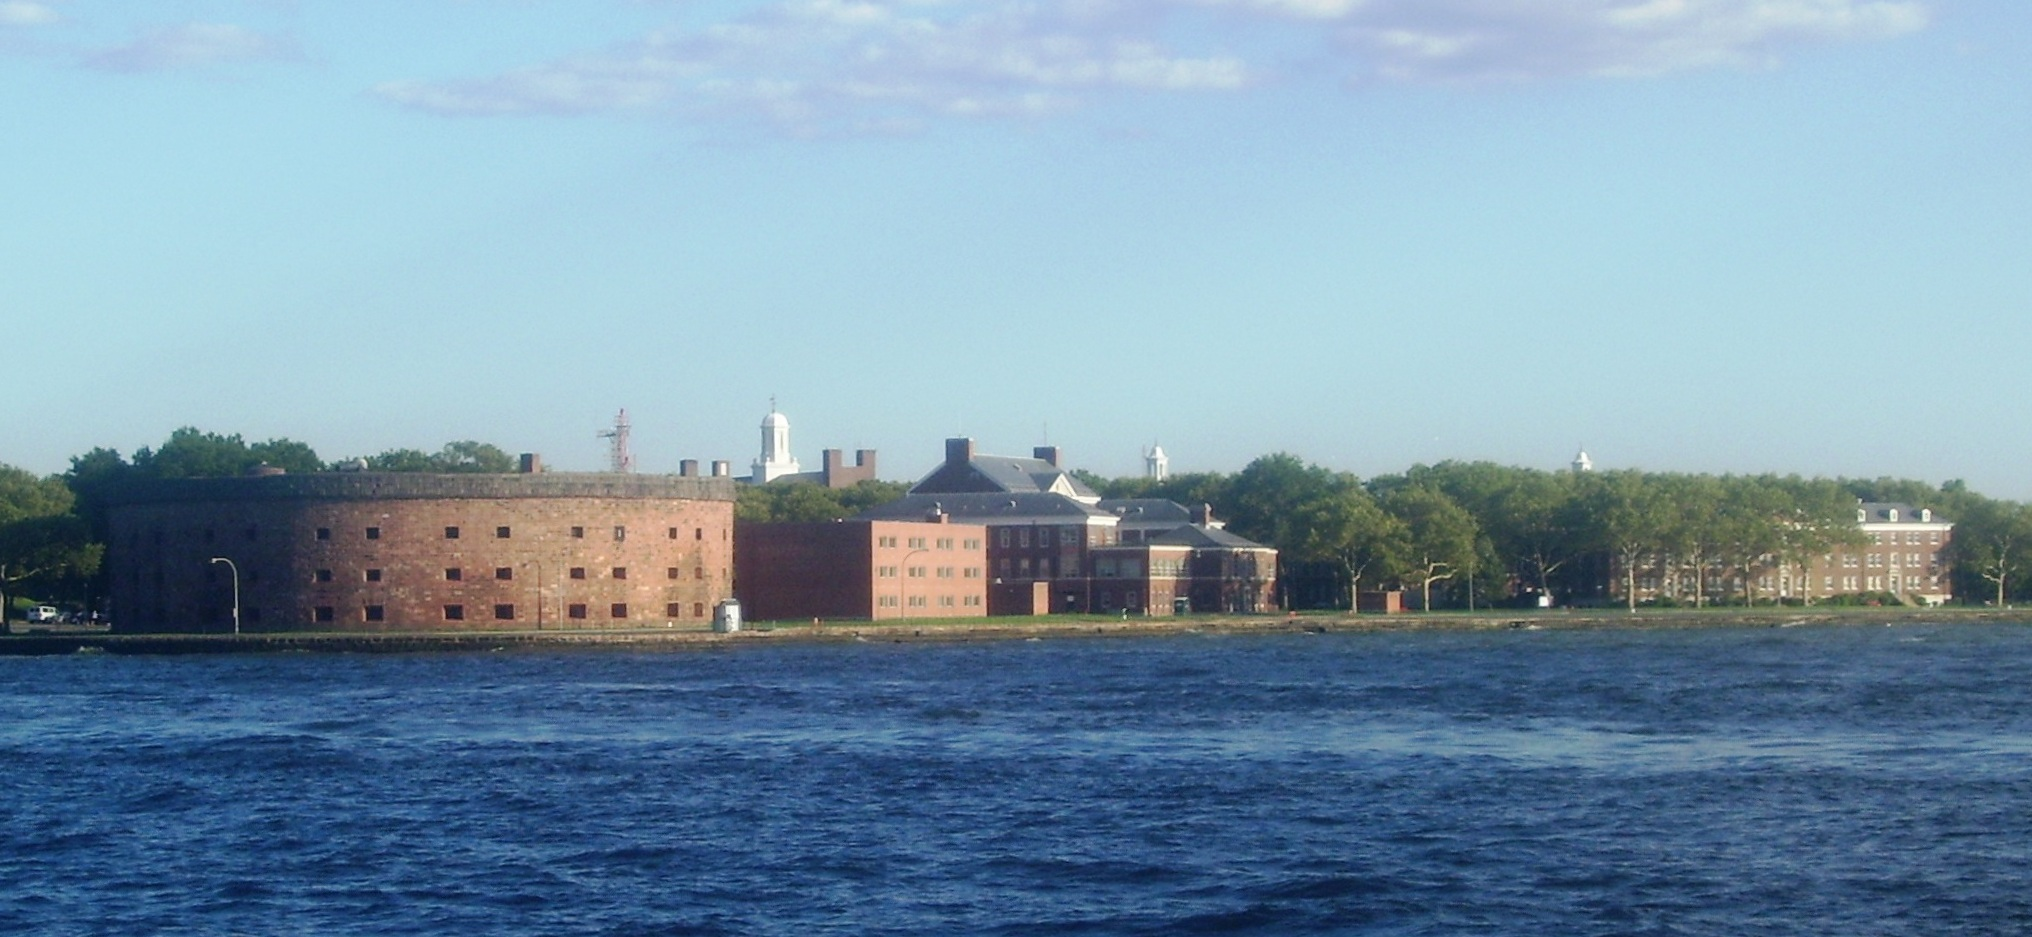 Governors Island Ferry Station